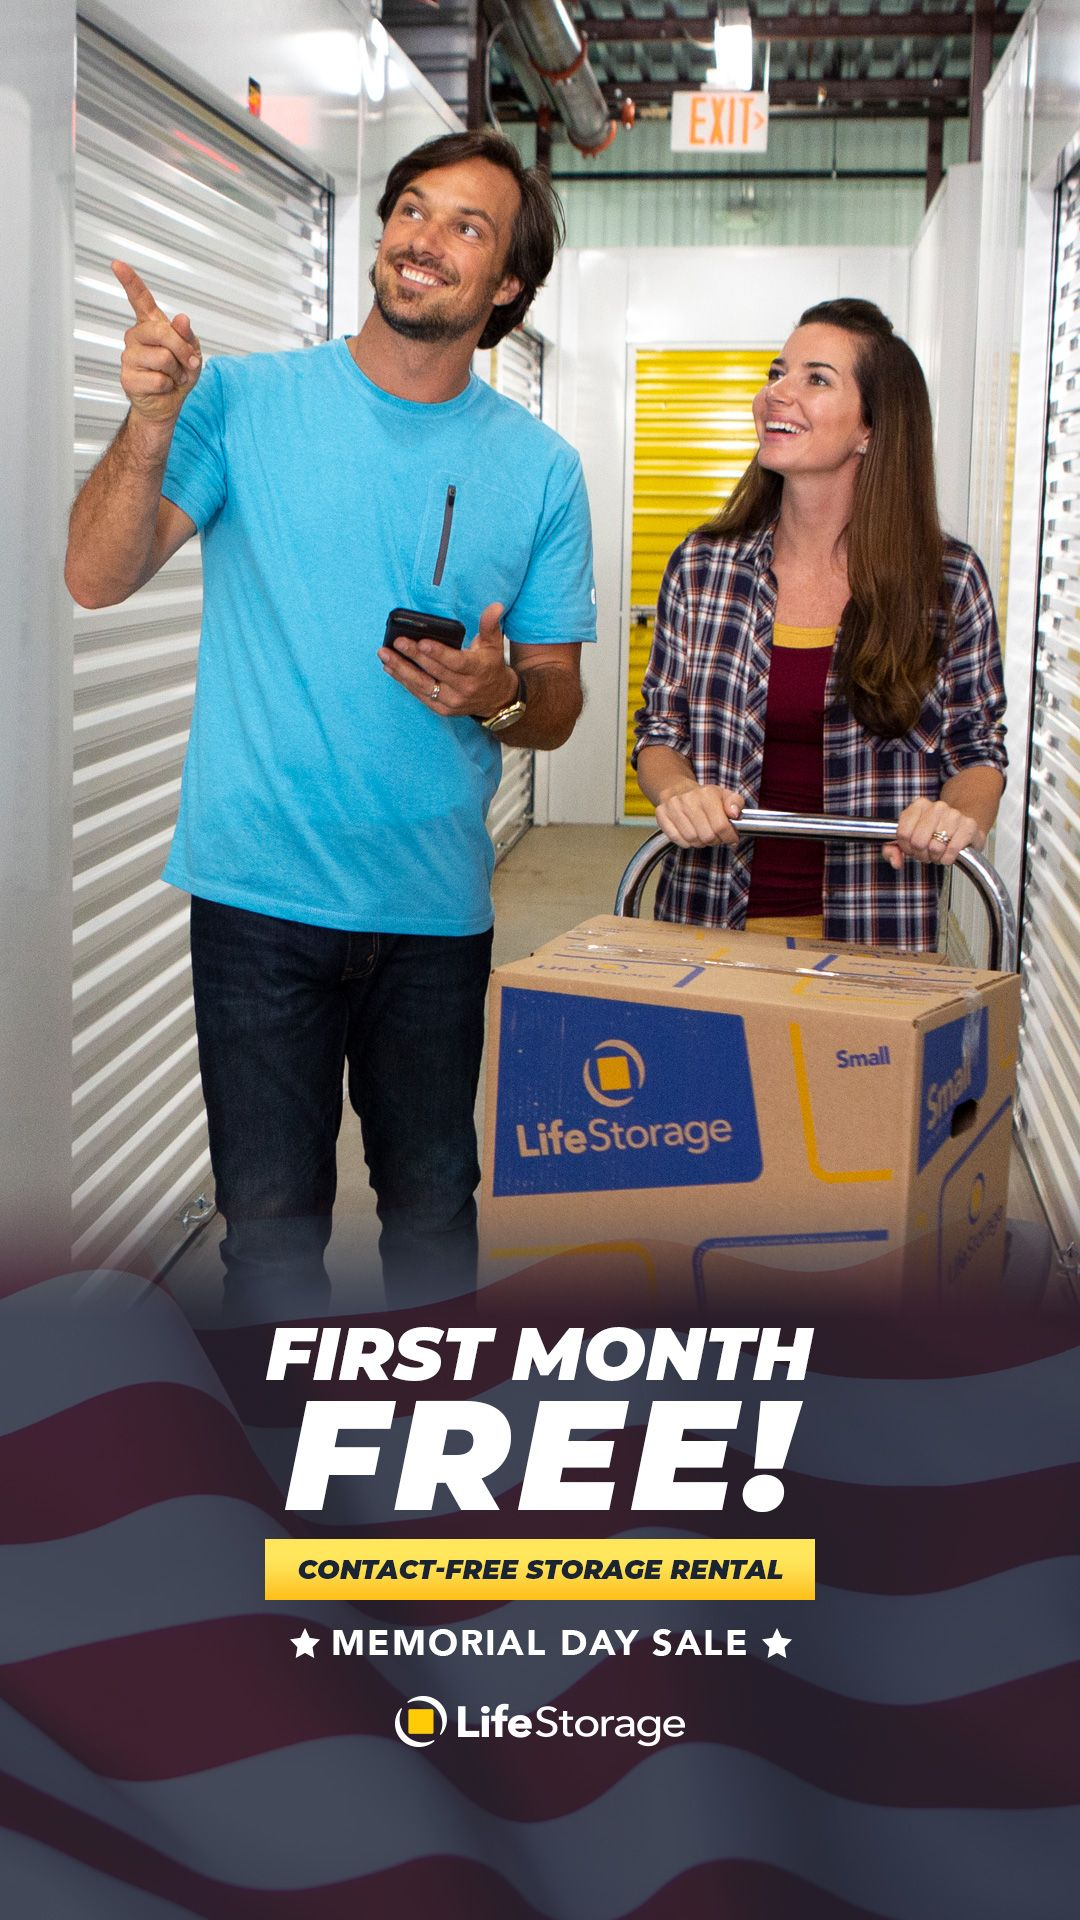 Get Your First Month FREE! in 2020 Life storage, Self